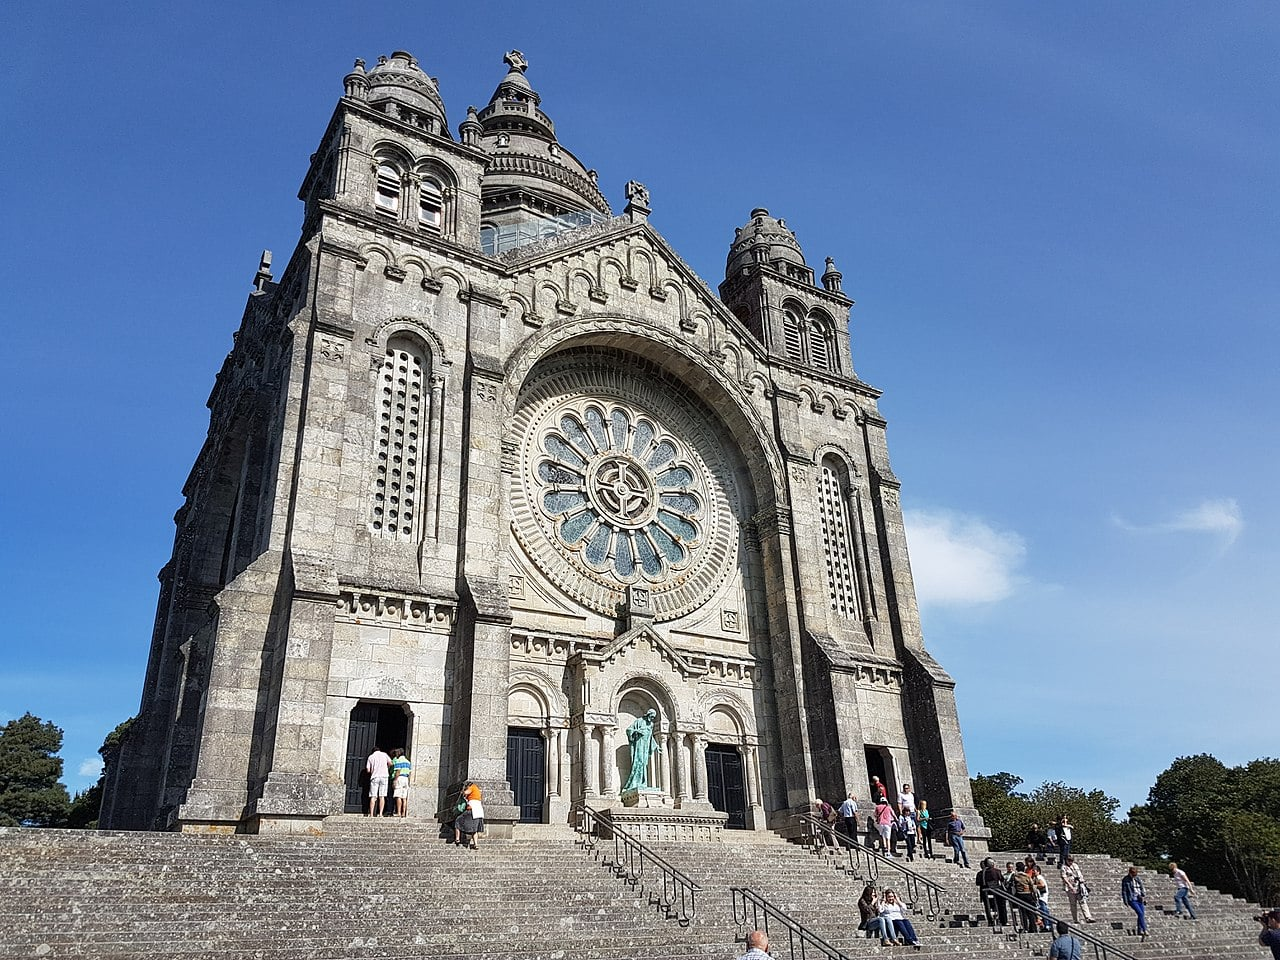 Basilica de Santa Luzia is one of the best places to visit in Portugal